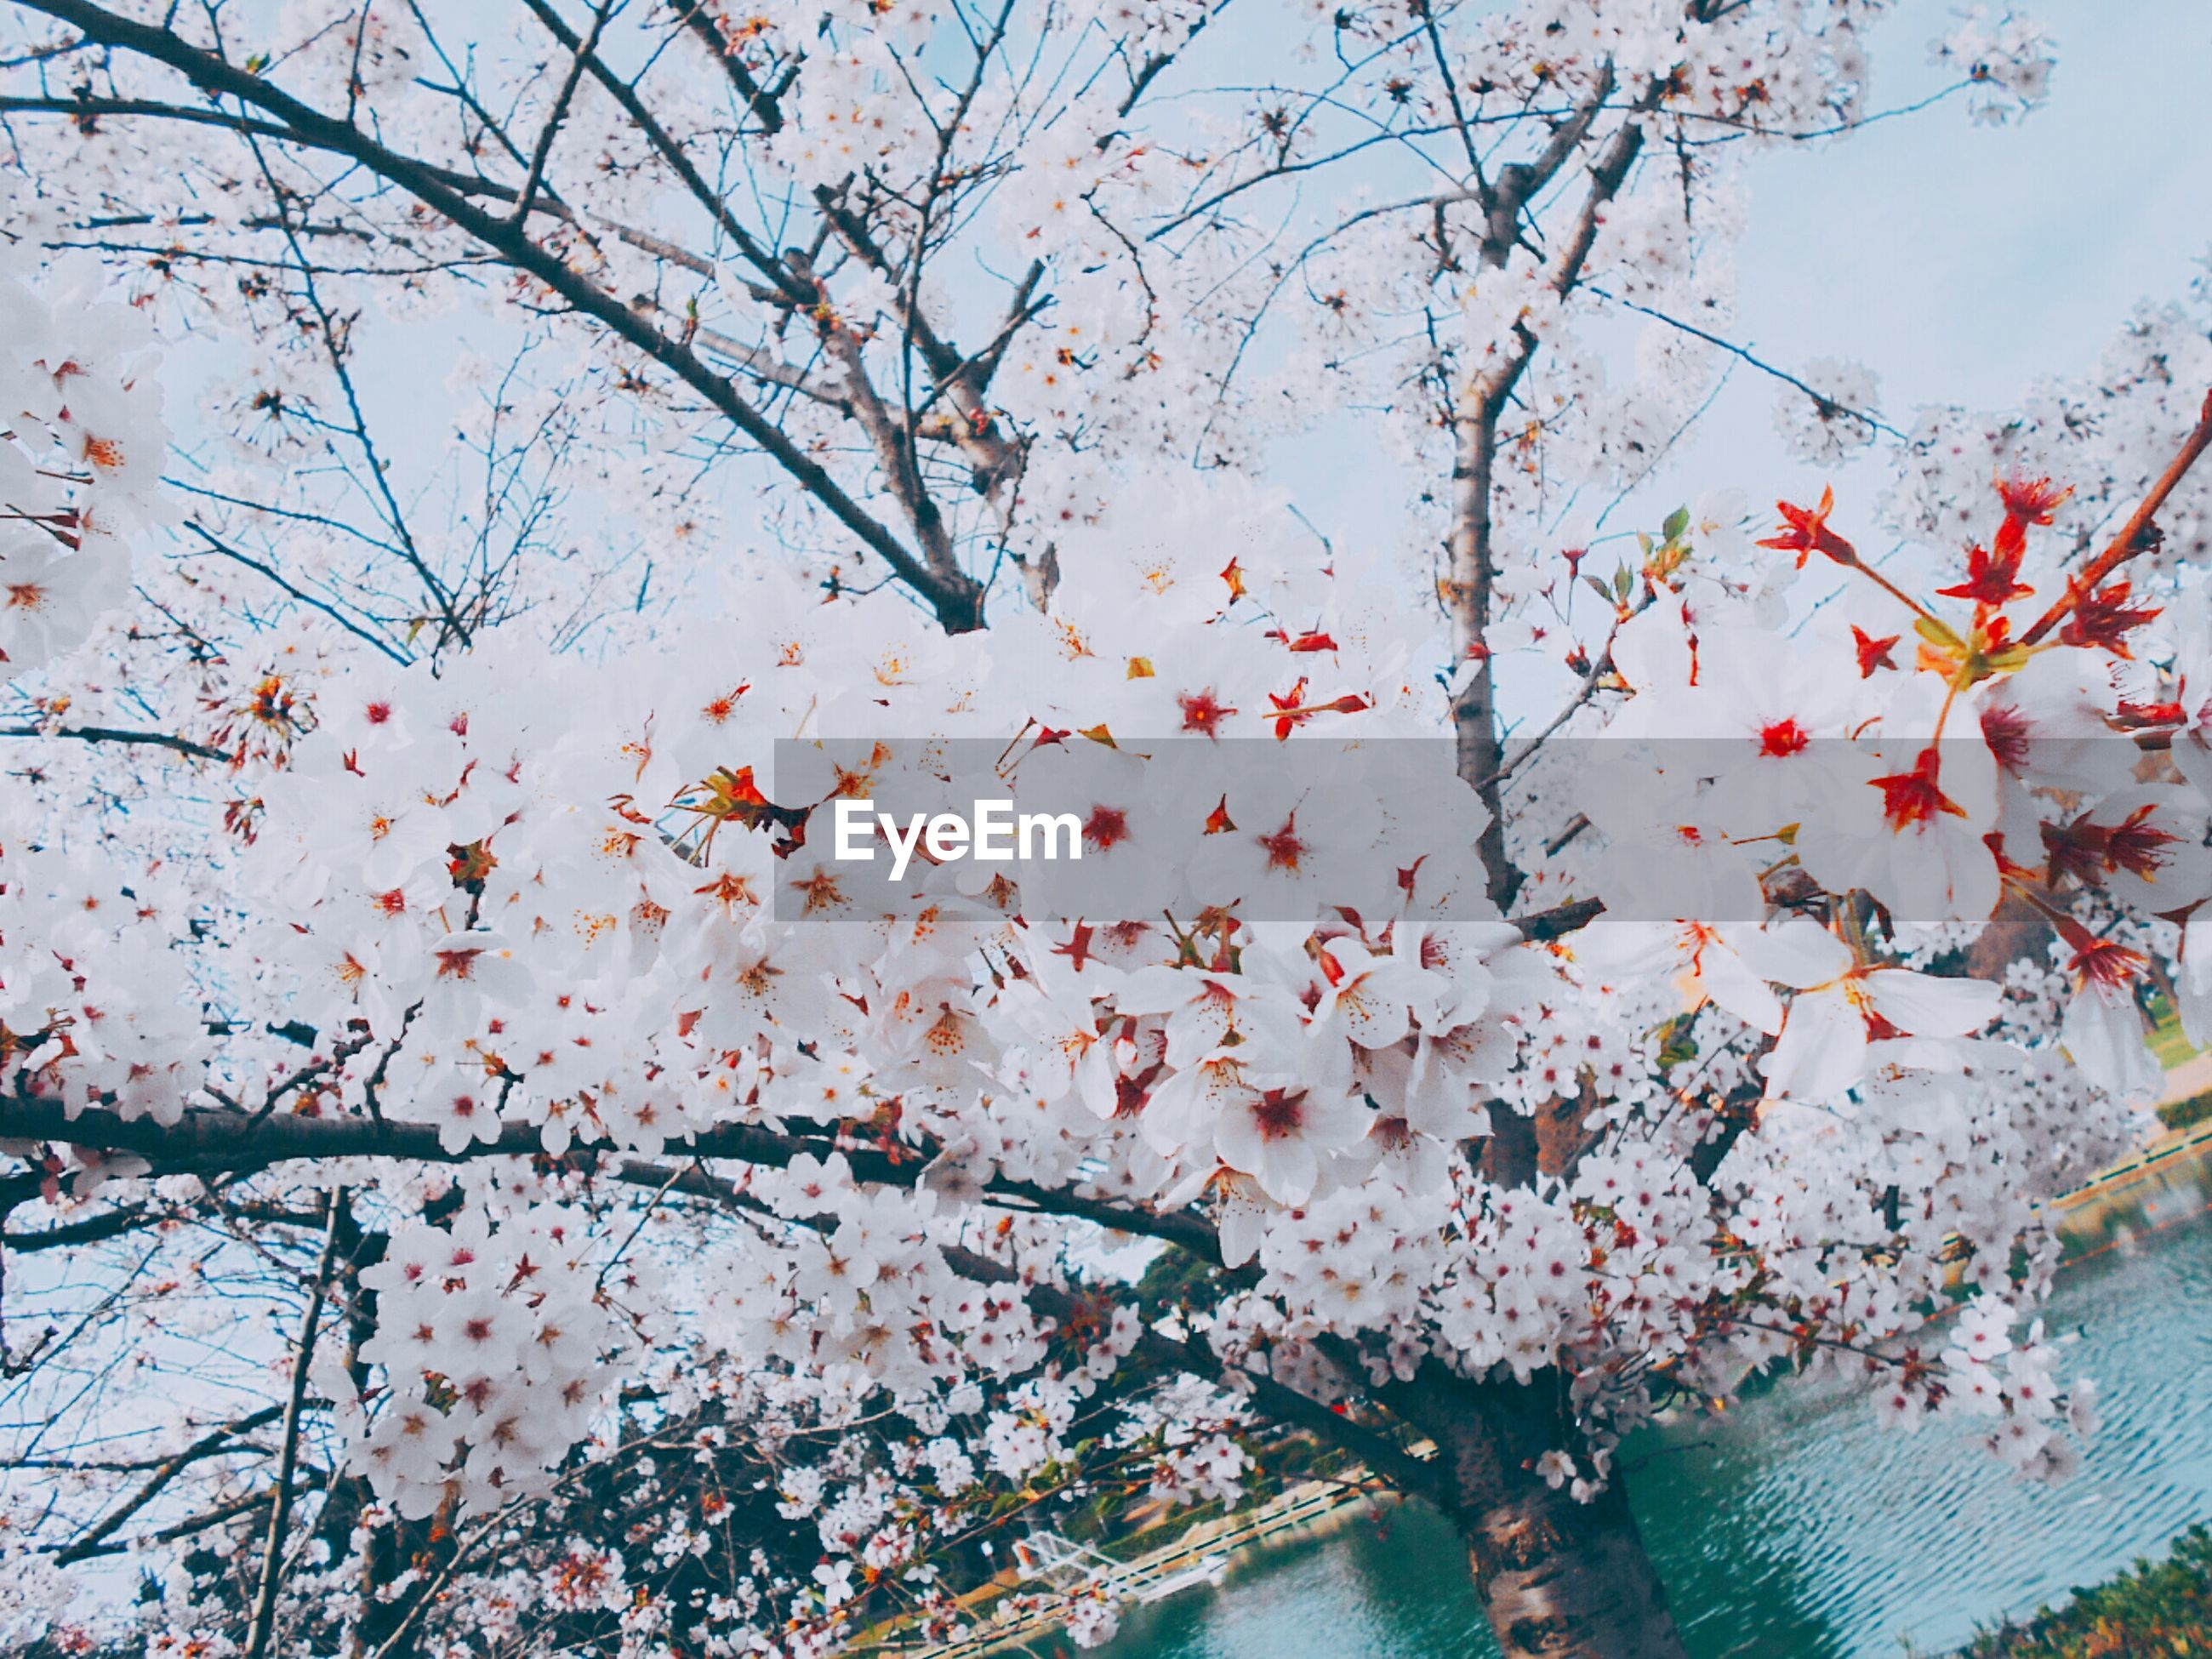 cherry blossom, tree, springtime, branch, flower, blossom, beauty in nature, cherry tree, growth, nature, freshness, fragility, day, outdoors, orchard, twig, no people, plum blossom, close-up, blooming, sky